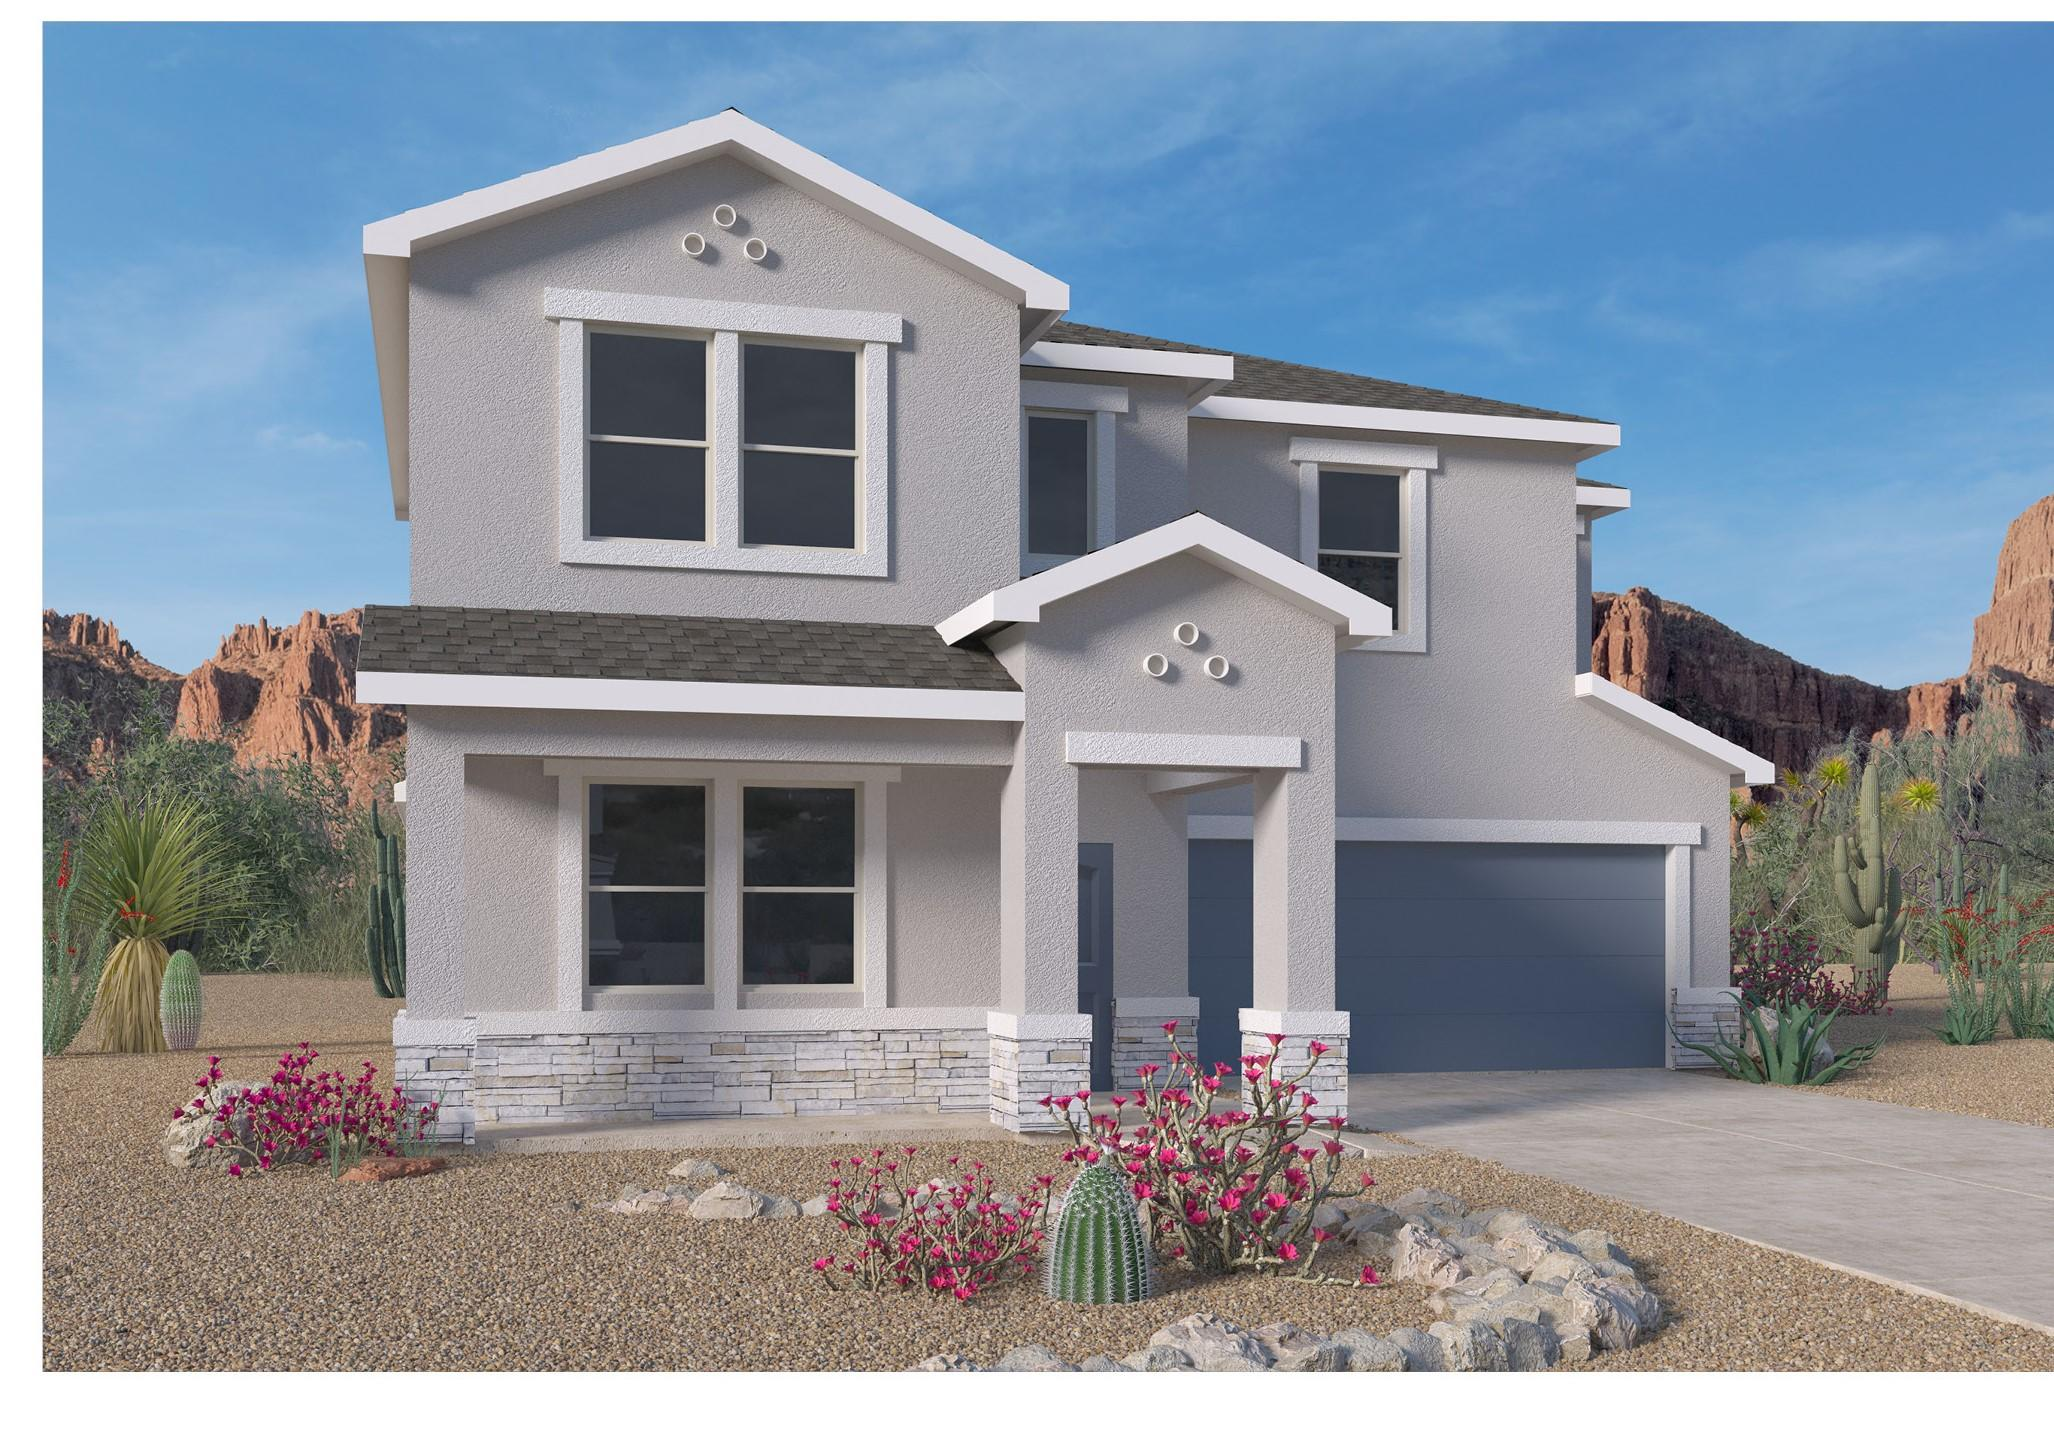 A beautiful NEW home in the VOLTERRA IV Community, this community has so much to offer in SE ABQ! This NEVER LIVED in home is our newly designed ''ORLANDO'' this incredible 2-story with porch and stone in front! An open bright kitchen/dining room area, along with GRANITE counter tops (Standard). This 4 bedroom has the split design has the master bedroom separate from the secondary bedrooms. Very sizable FLEX room. Bonus room upstairs, you'll love the kitchen island, with plenty of space for stools. The kitchen also features a corner pantry and looks out over the spacious great room and dining area. The master suite includes a walk-in closet. The covered patio is a great place to entertain your guests or just relax in your backyard. Close to LABS, Kirkland, & I-40